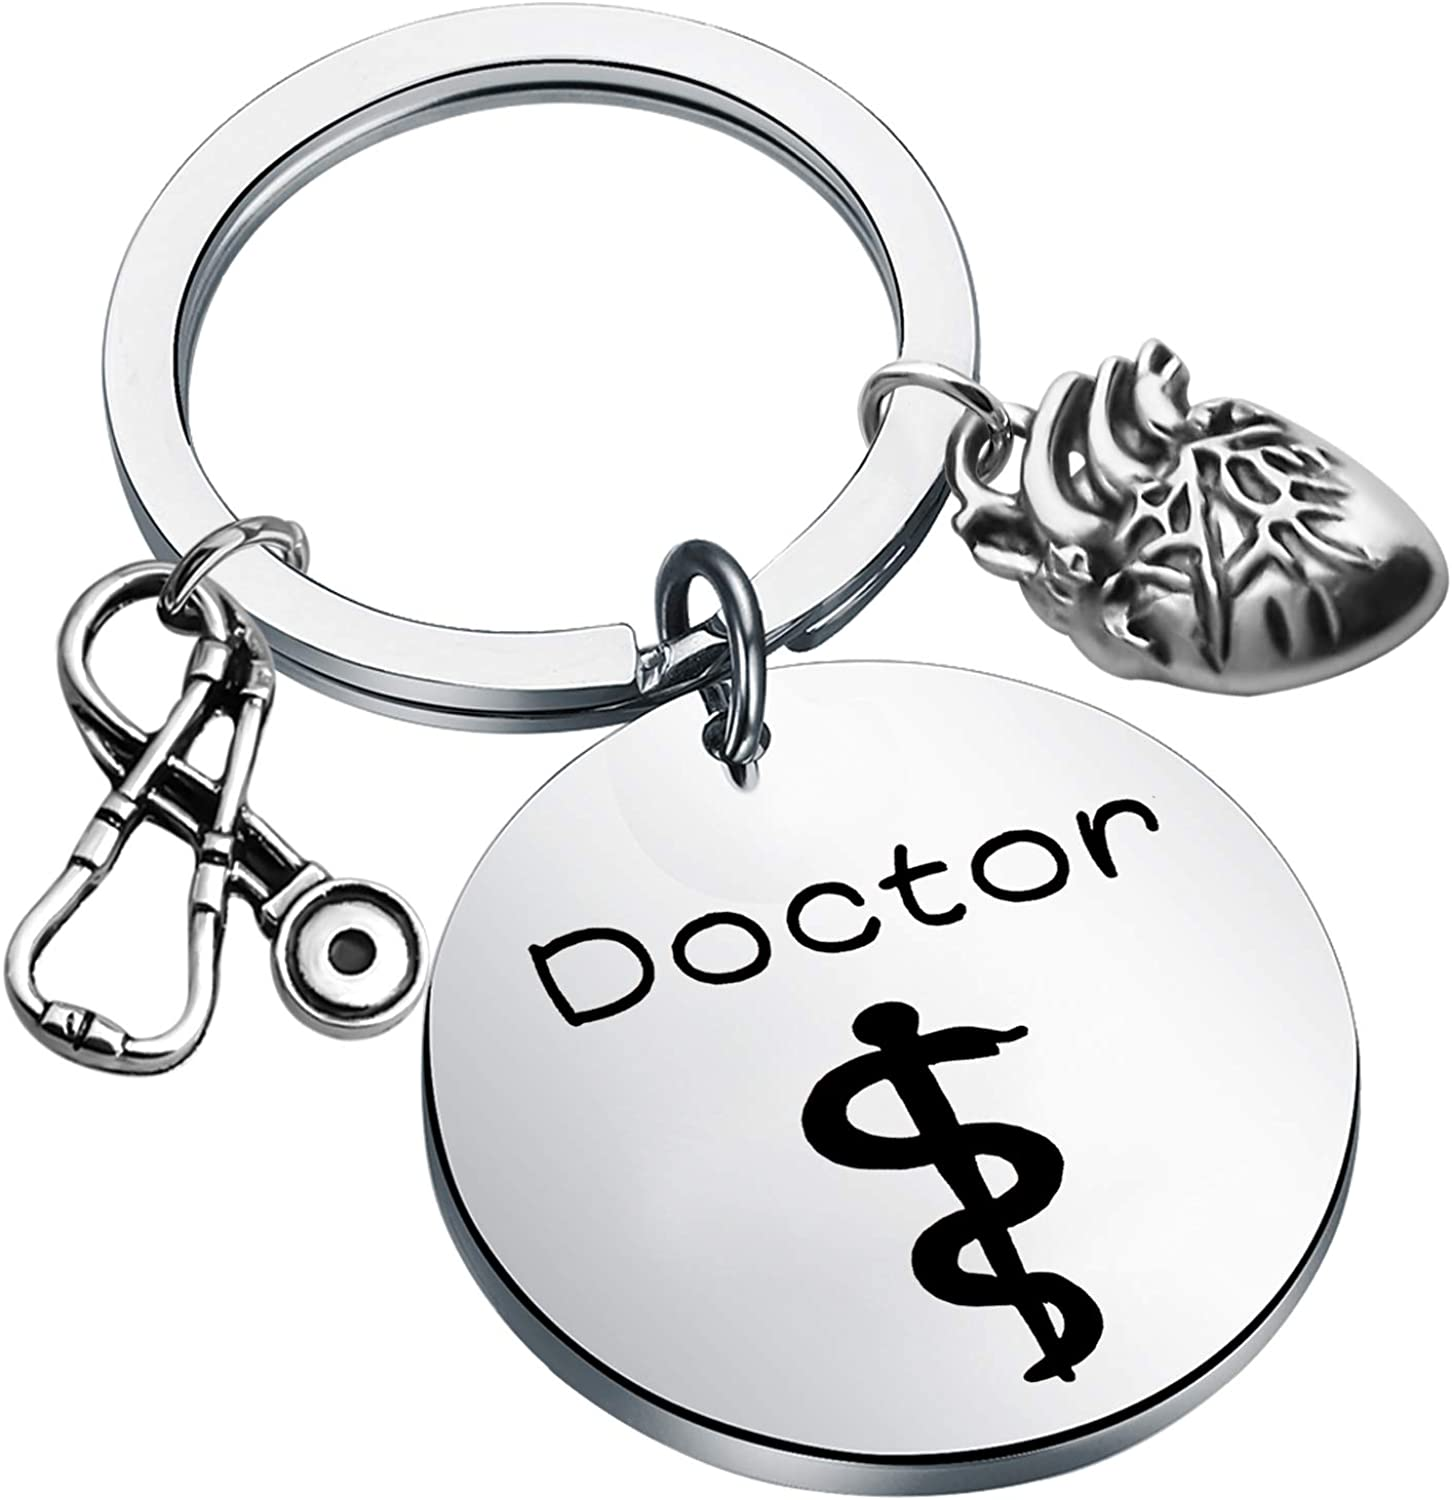 FEELMEM Doctor Gift Cardiologists Keychain with Stet Max 50% Ranking TOP5 OFF